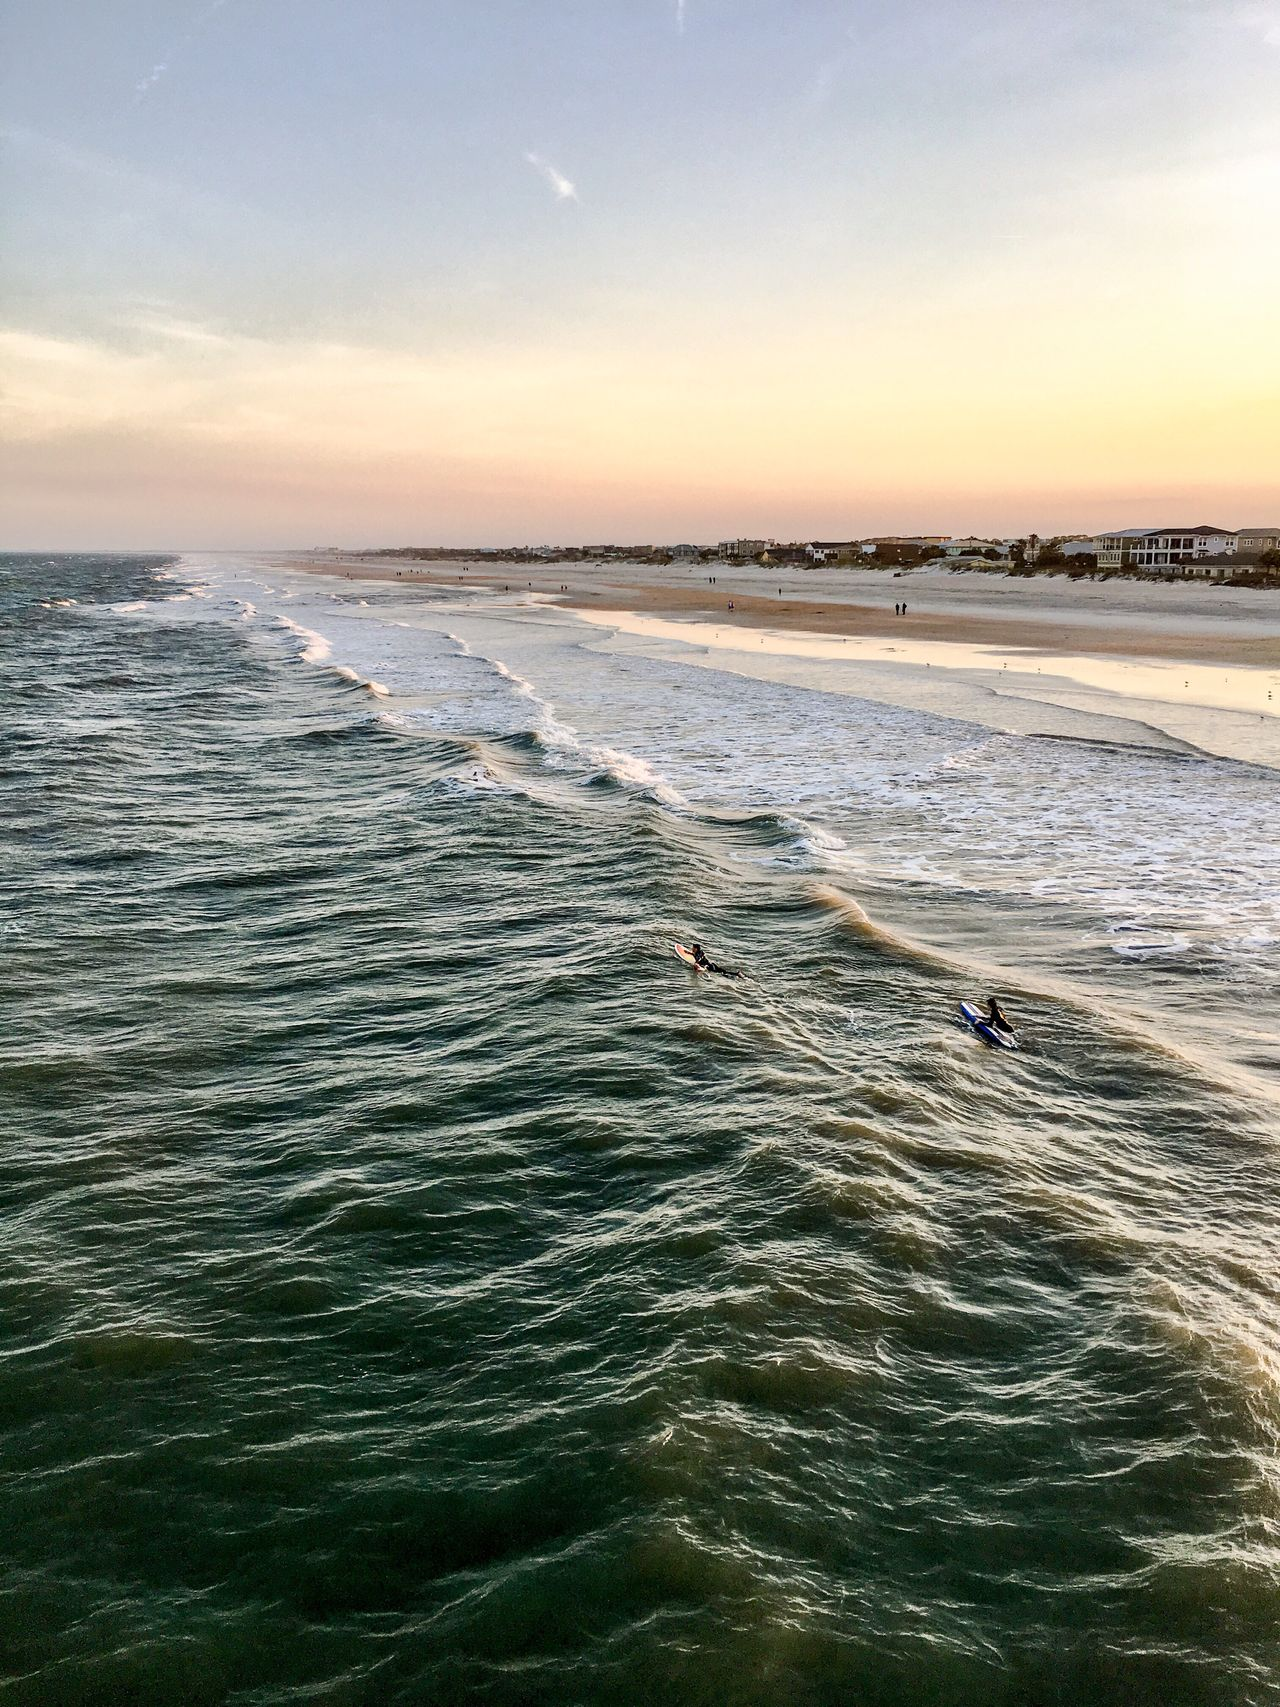 Sea Water Nature Scenics Sky Horizon Over Water Beach Leisure Activity Lifestyles Outdoors Real People Wave Day Surfing